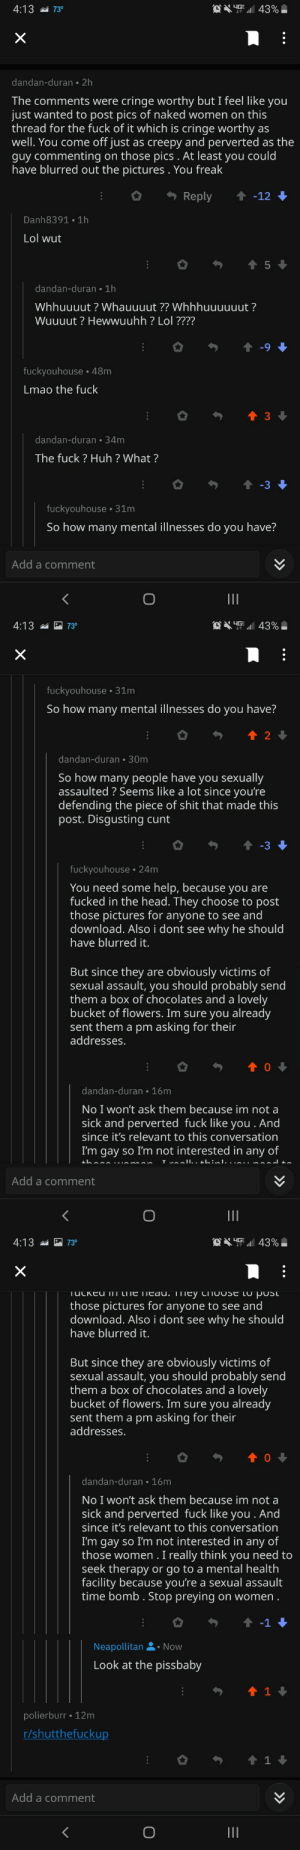 Creepy, Gonewild, and Head: LIG  4:13  73  43%  dandan-duran 2h  The comments were cringe worthy but I feel like you  just wanted to post pics of naked women on this  thread for the fuck of it which is cringe worthy as  well. You come off just as creepy and perverted as the  guy commenting on those pics. At least you could  have blurred out the pictures . You freak  Reply  t-12  Danh8391 1h  Lol wut  t 5  dandan-duran 1h  Whhuuuut? Whauuuut ?? Whhhuuuuuut?  Wuuuut? Hewwuuhh ? Lol ????  fuckyouhouse 48m  Lmao the fuck  3  dandan-duran 34m  The fuck ? Huh ? What?  -3  fuckyouhouse 31m  So how many mental illnesses do you have?  Add a comment  DHG 43%  4:13  73  fuckyouhouse 31m  So how many mental illnesses do you have?  t 2  dandan-duran 30m  So how many people have you sexually  assaulted? Seems like a lot since you're  defending the piece of shit that made this  post. Disgusting cunt  t -3  fuckyouhouse 24m  You need some help, because you are  fucked in the head. They choose to post  those pictures for anyone to see and  download. Also i dont see why he should  have blurred it.  But since they  sexual assault, you should probably send  them a box of chocolates and a lovely  bucket of flowers. Im sure you already  sent them a pm asking for their  addresses  obviously victims of  are  dandan-duran 16m  No I won't ask them because im not a  sick and perverted fuck like you . And  since it's relevant to this conversation  I'm gay so I'm not interested in any of  ..ll..ih:I.  Add a comment  II  HG 43%  4:13  73  X  Tuckeu I1  LiTe tiedu. 111ey crToOse (o posl  those pictures for anyone to see and  download. Also i dont see  why he should  have blurred it.  But since they  sexual assault, you should probably send  them a box of chocolates and a lovely  bucket of flowers. Im sure you already  sent them a pm asking for their  addresses  obviously victims of  are  dandan-duran 16m  No I won't ask them because im not a  sick and perverted fuck like you . And  since it's rel